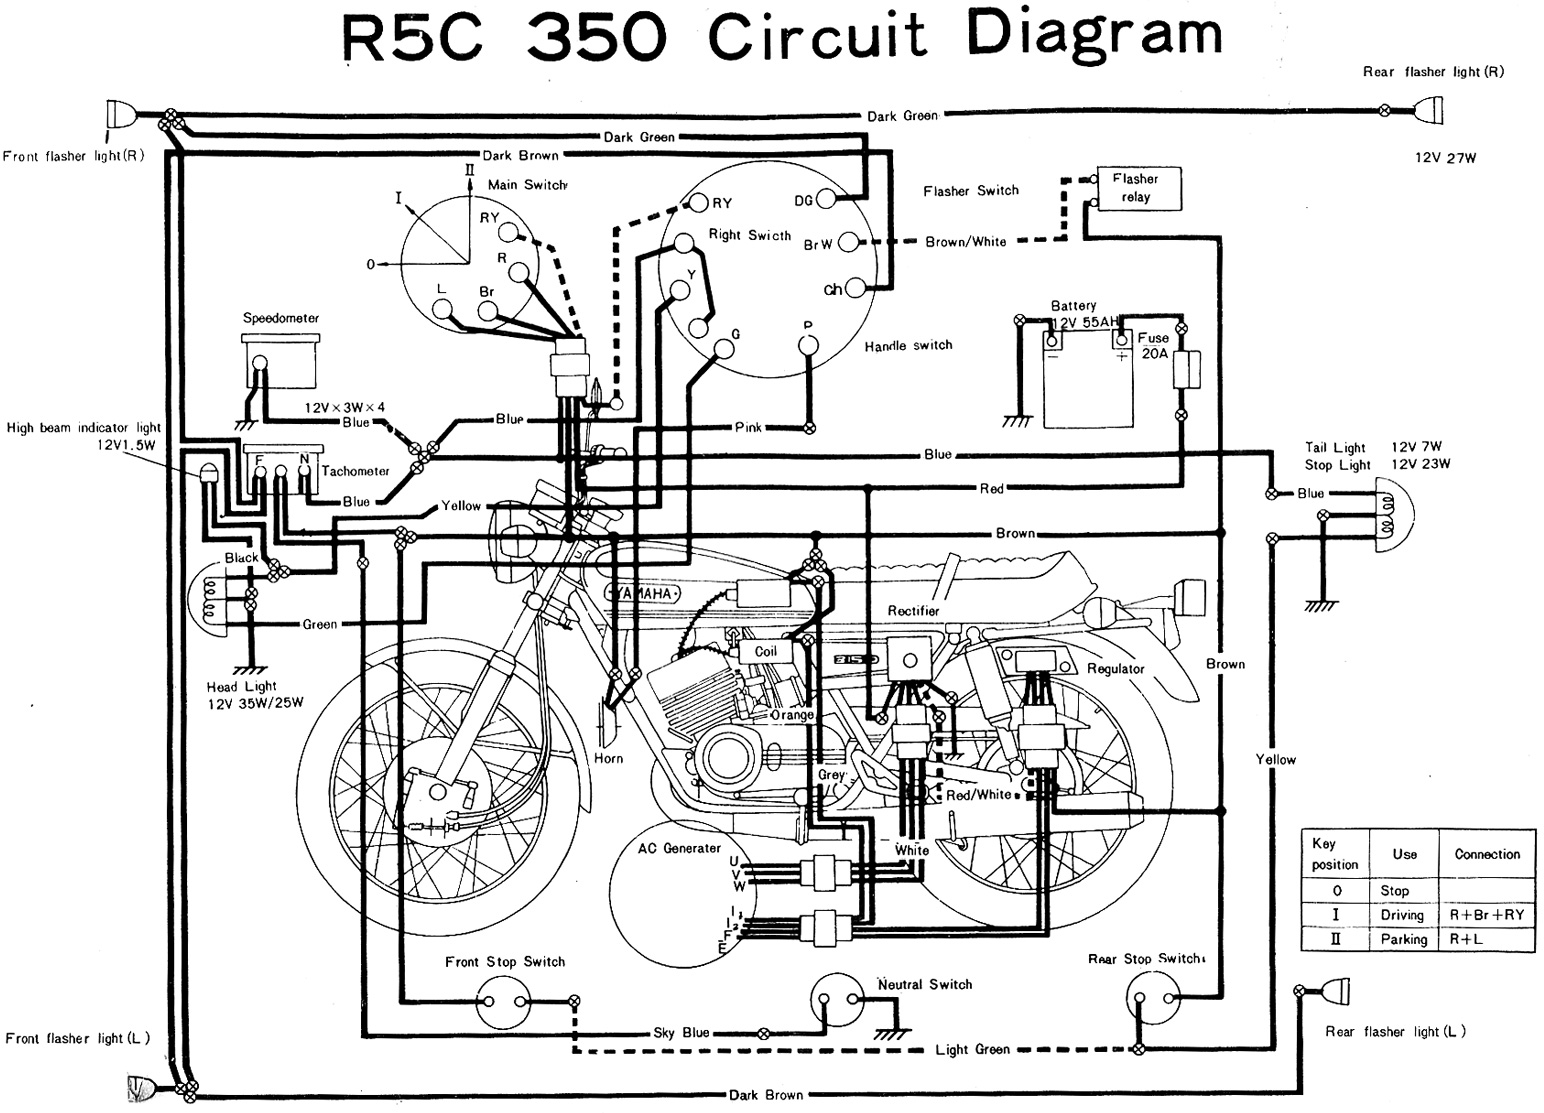 Yamaha RD350 R5C Wiring Diagram motorcycle wiring diagrams evan fell motorcycle worksevan fell Basic Motorcycle Diagram at bayanpartner.co